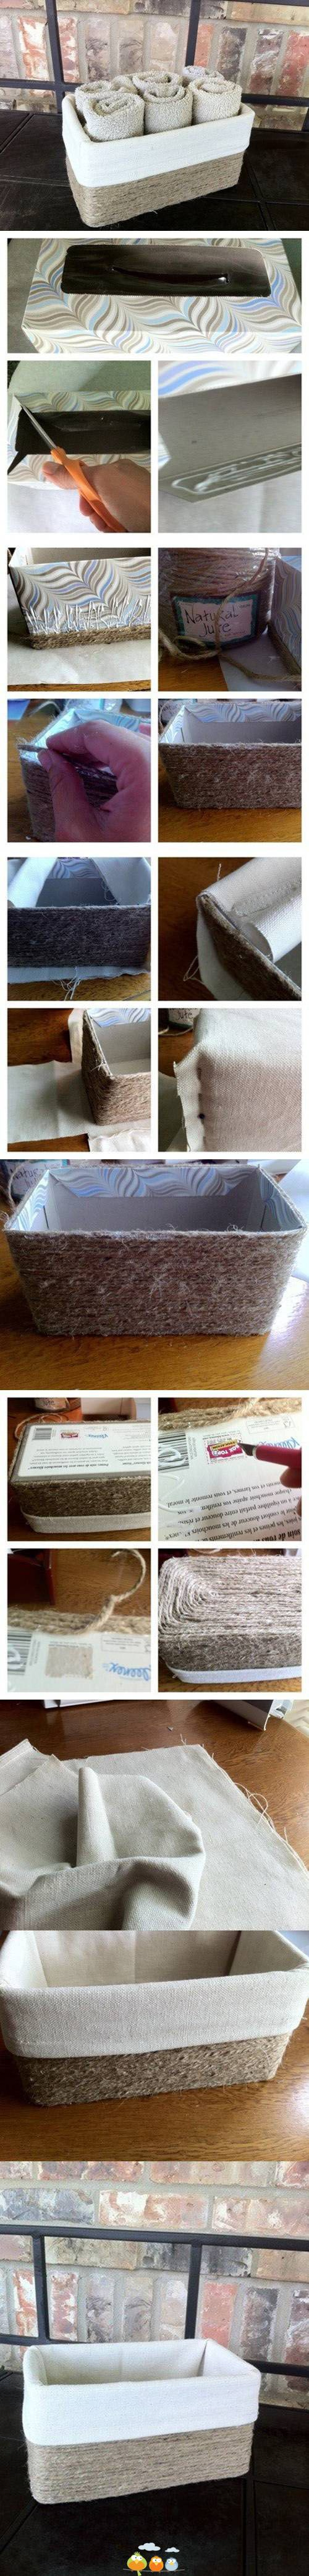 tissue box to decorative storage box                              …